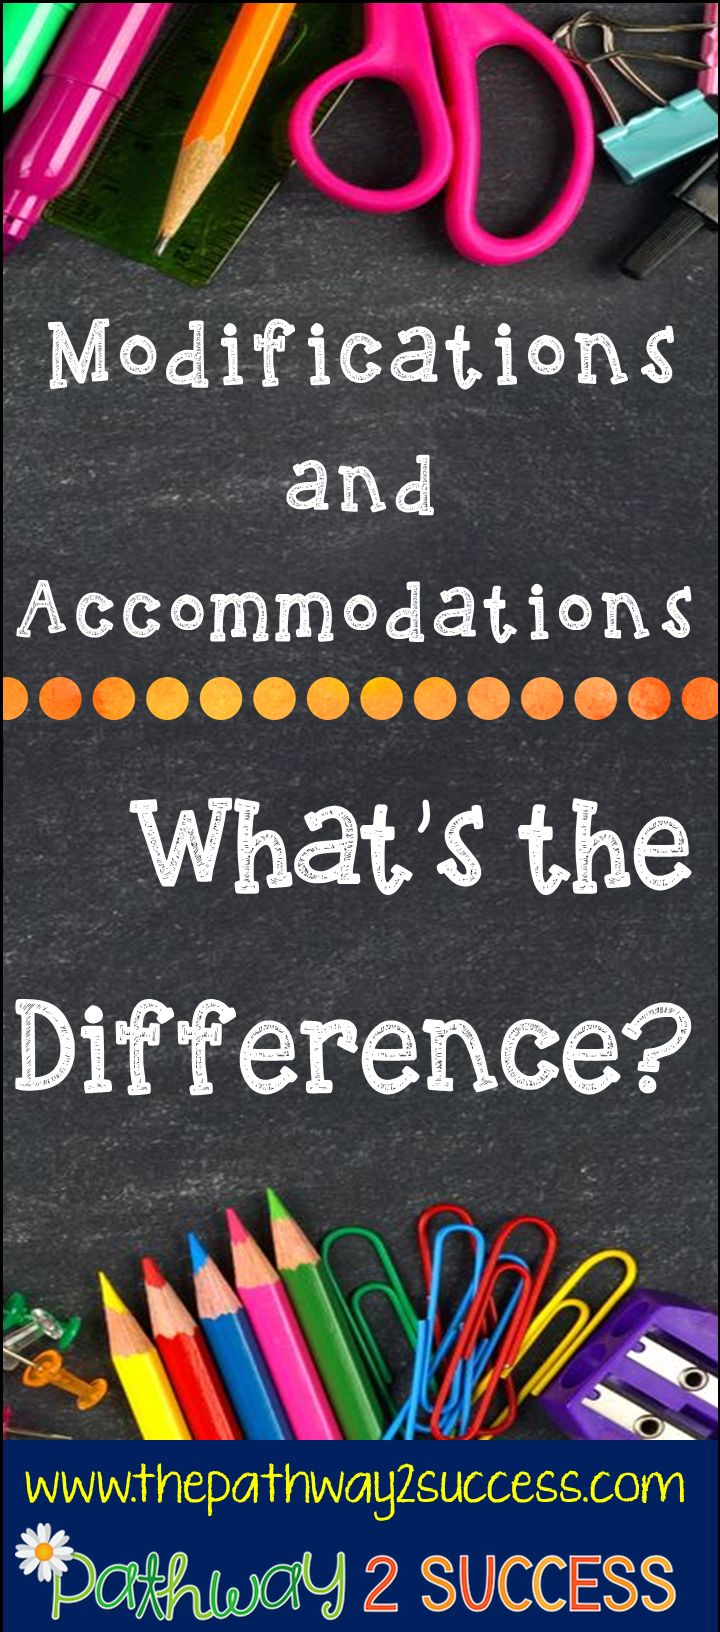 Modifications vs. Accommodations: What is the difference?